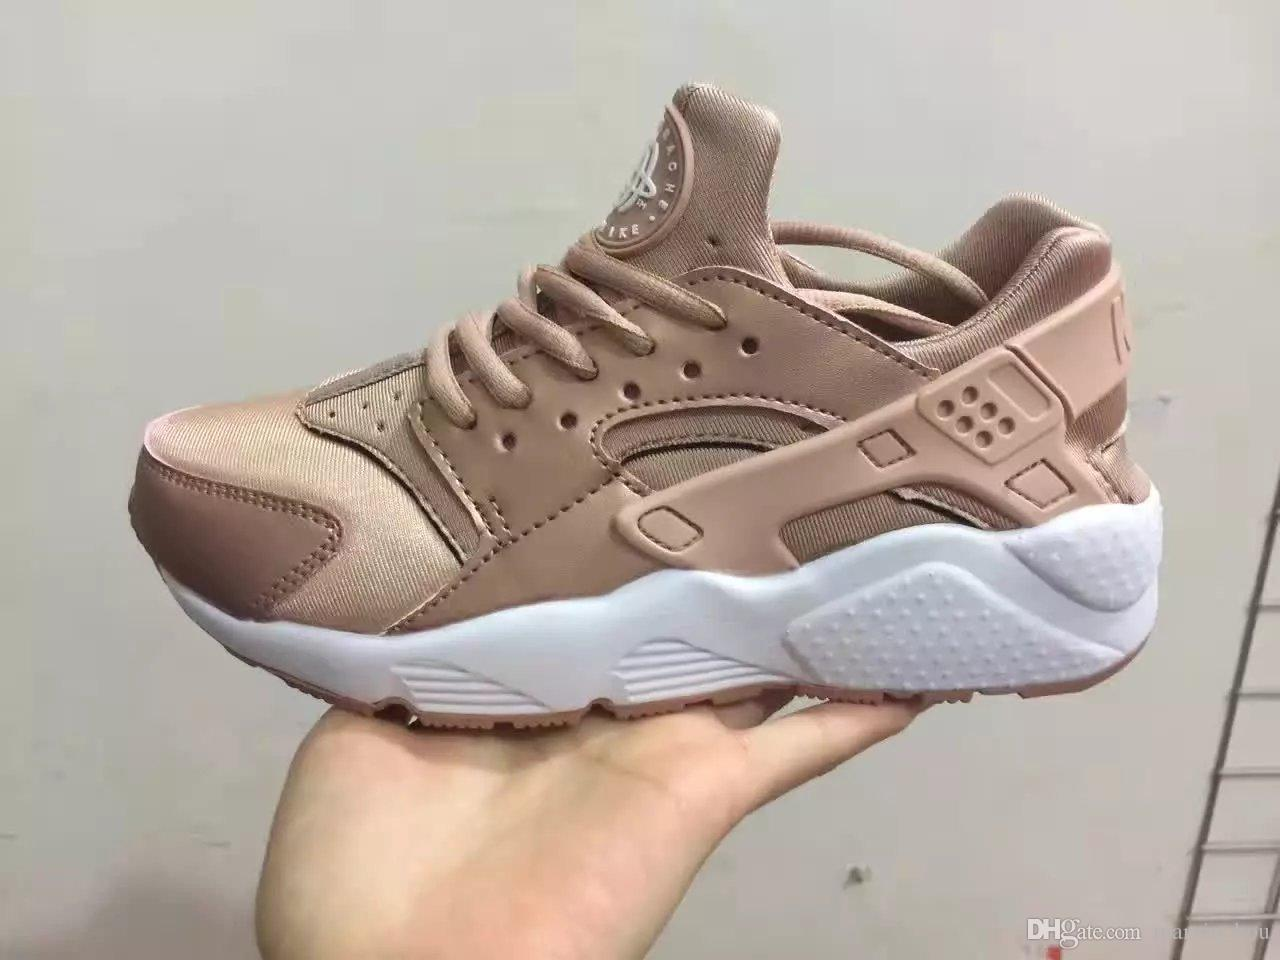 75dcaf224472 New Arrival Rose Gold Grey White Air Huarache ID Shoes Black Red Brown  Huaraches Men And Women Sneakers Tech Huraches Casual Shoes Clogs For Women  Shoe ...